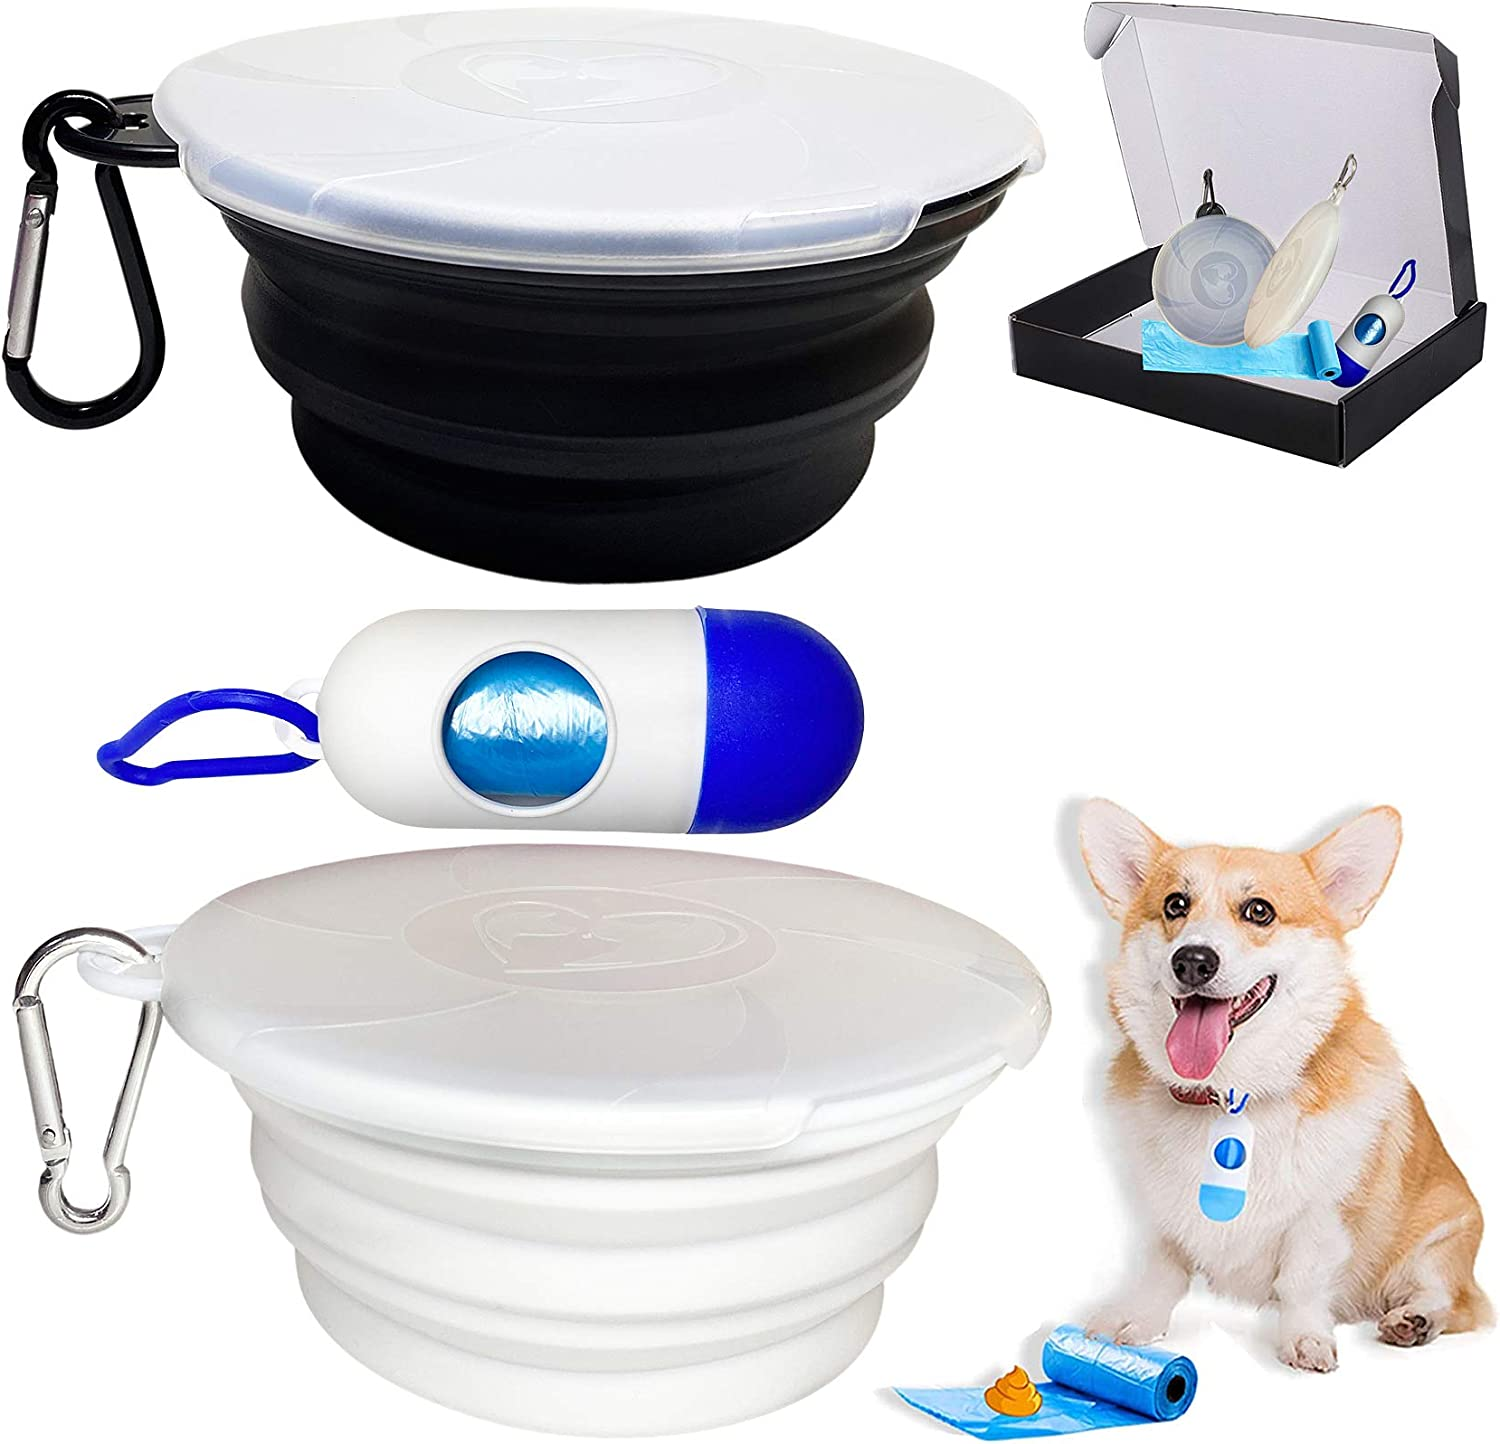 Collapsible Dog Bowl for Travel, 2 Pack Silicone Foldable Bowls with Lids & Dog Poop Bag with Dispenser, Dog Water Food Bowl Cat Feeding Cup Dish, Small Dog Portable Bowl Set,450ml,15oz (Black+White)